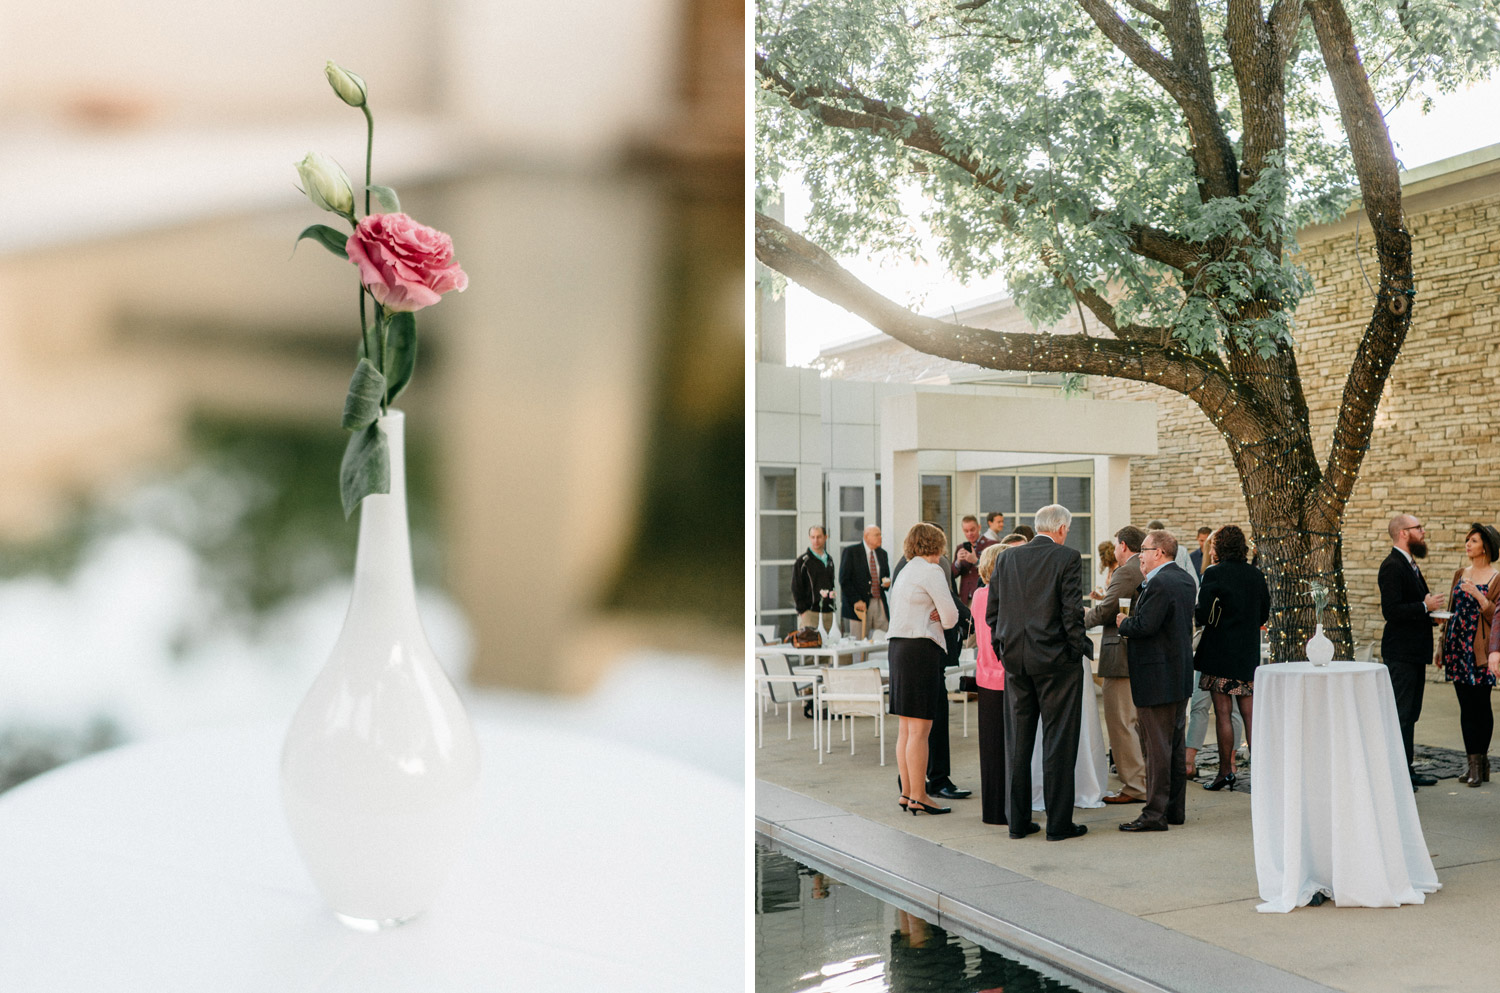 Reception at Des moines Art Center photography by geneoh photography